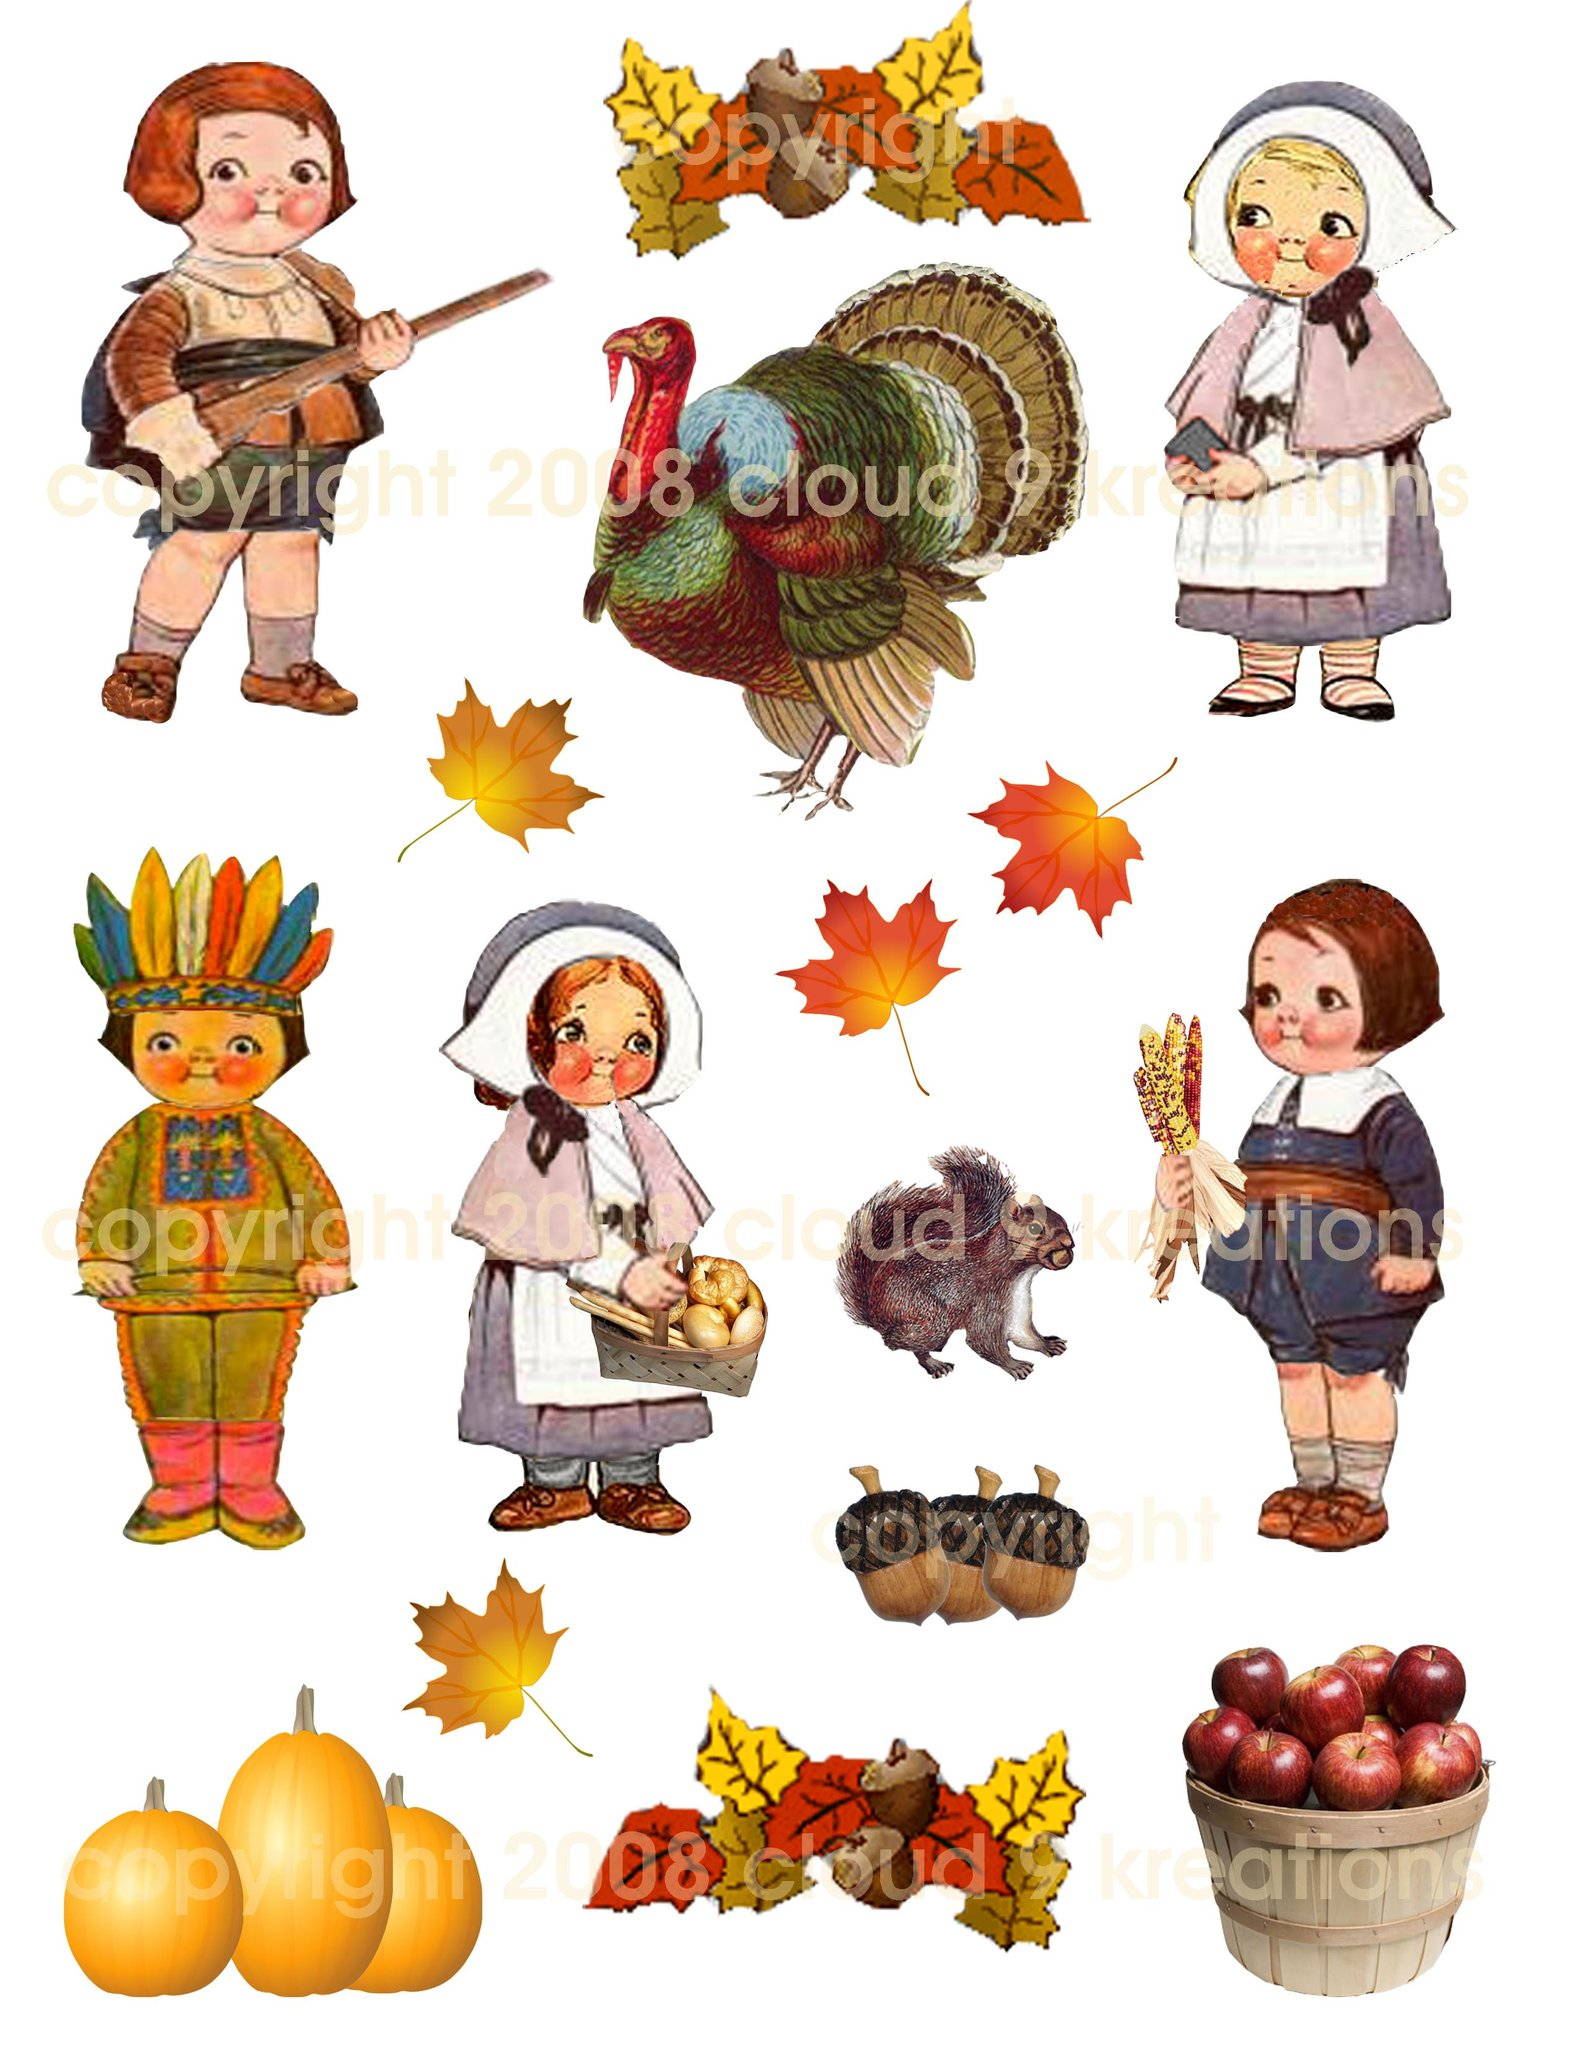 Thanksgiving Dolly Dingle Digital Collage Sheet.